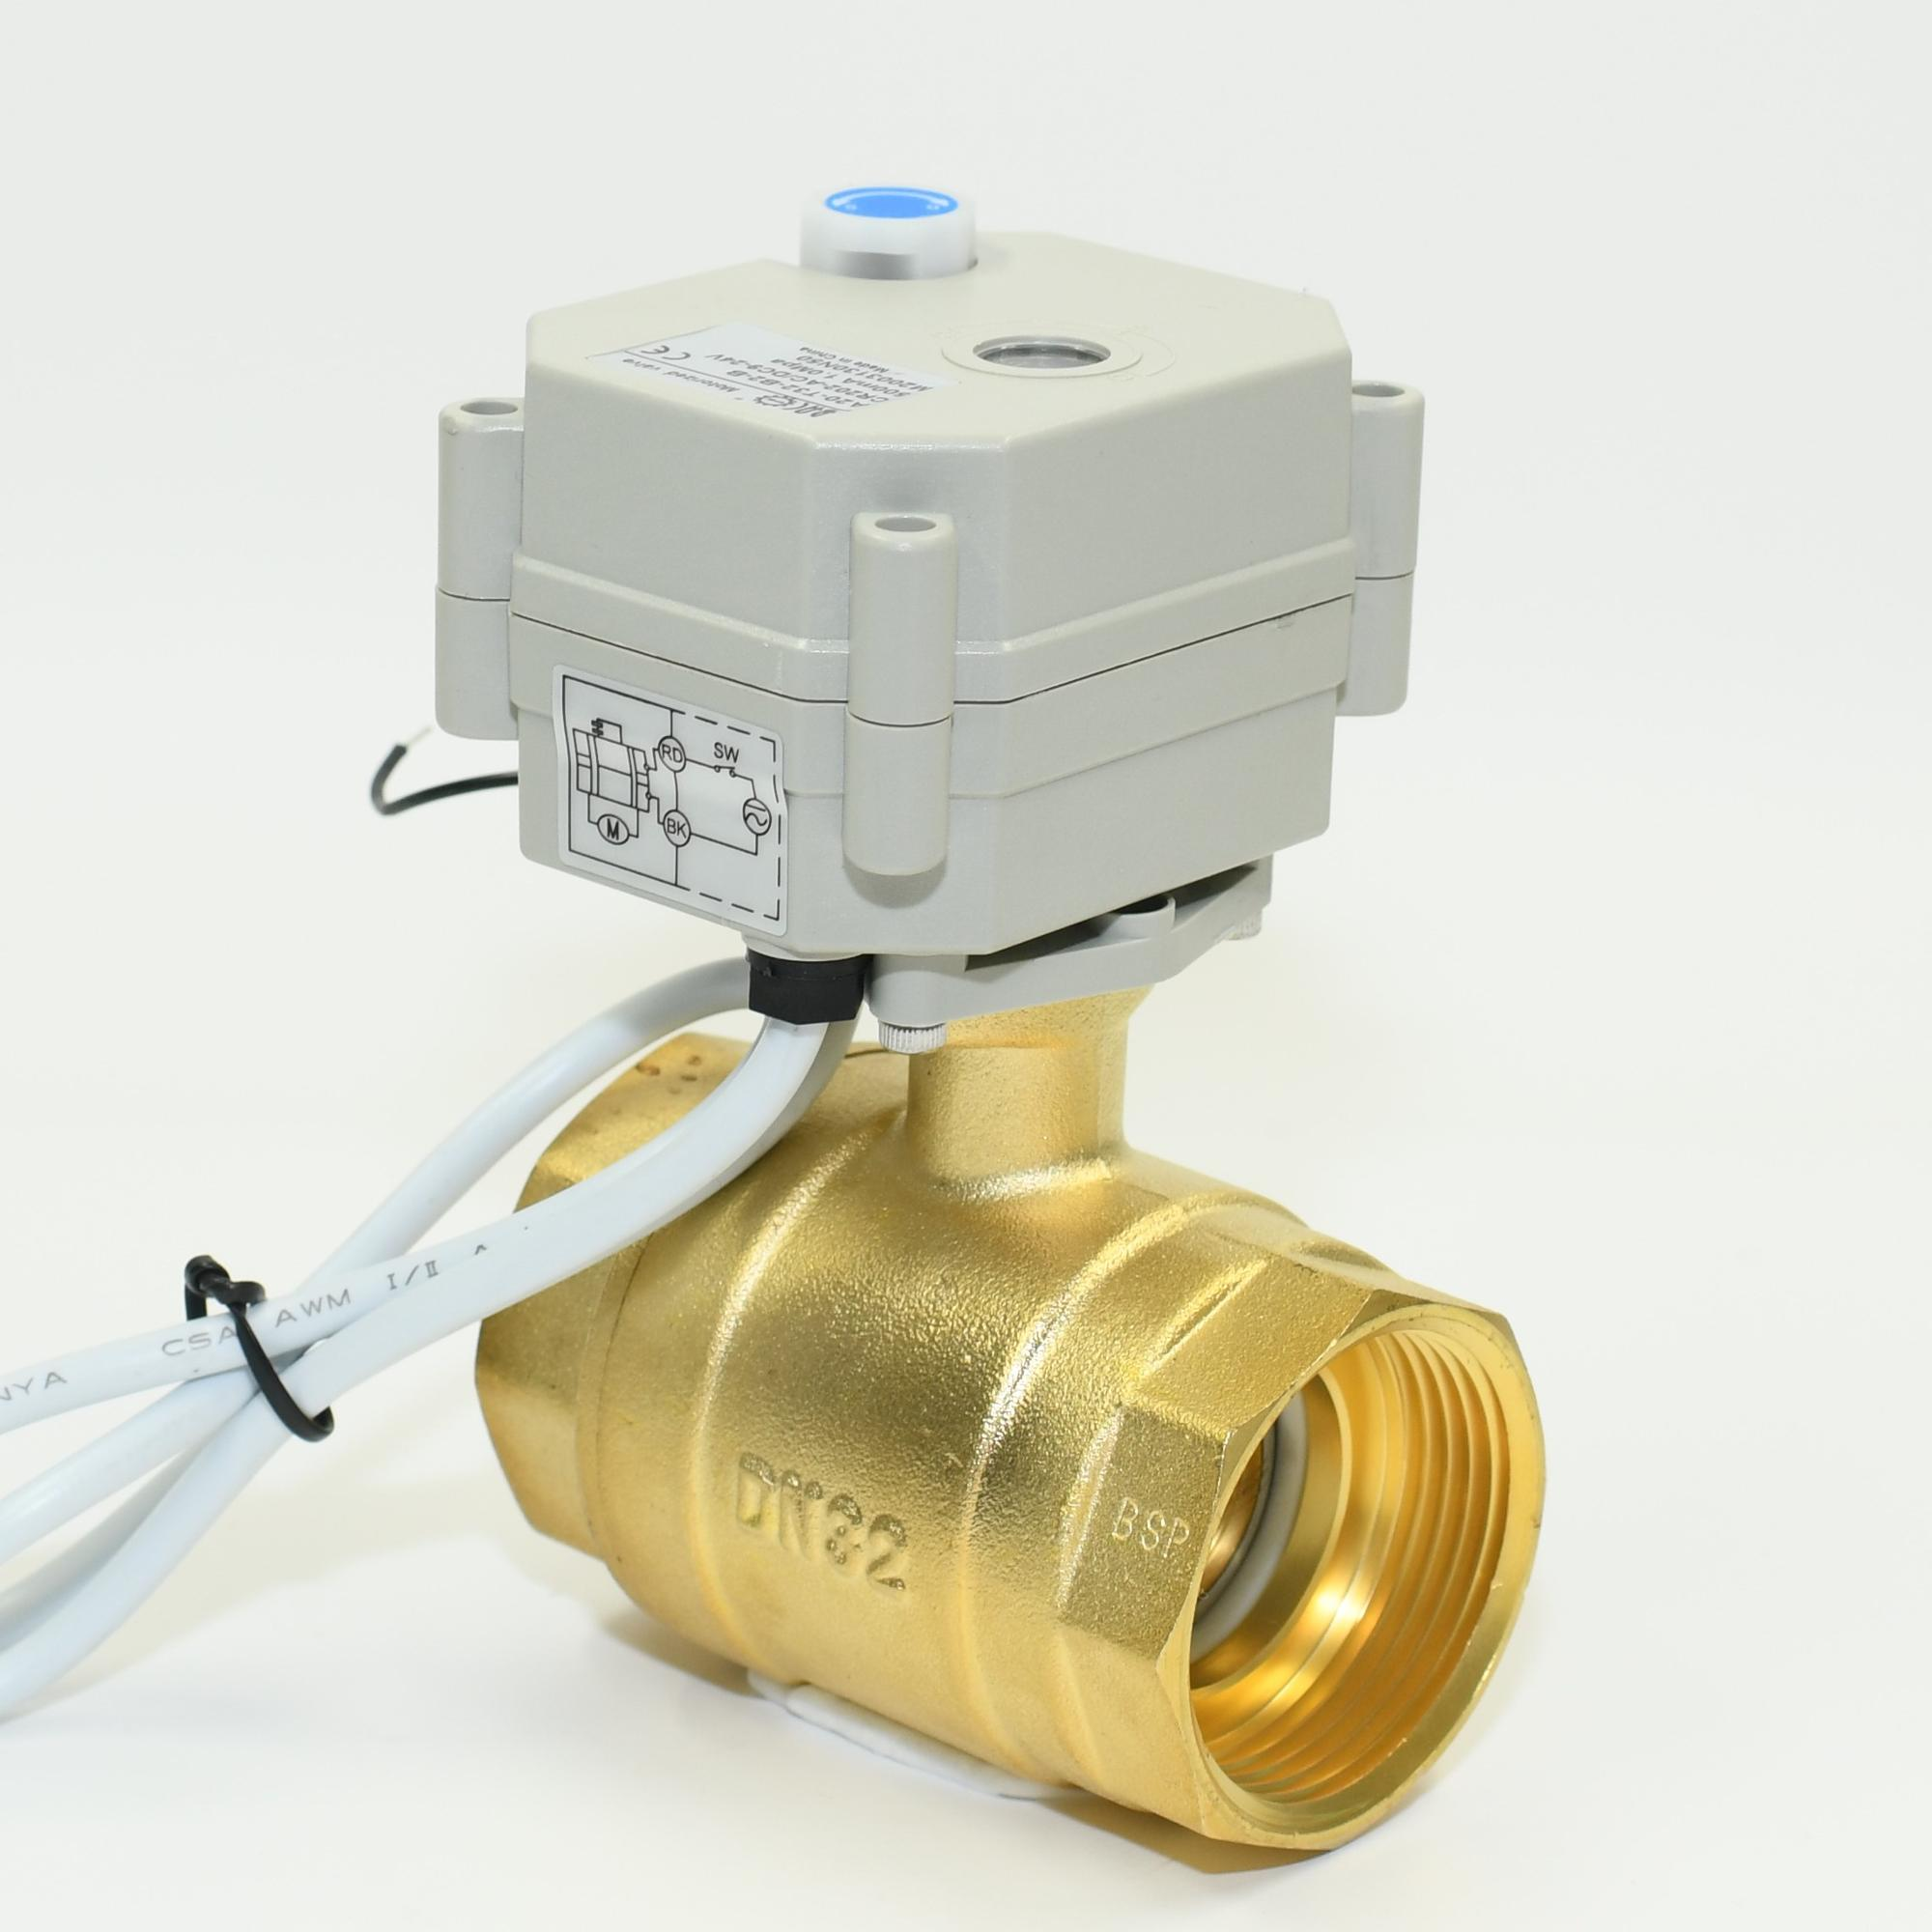 "2 way DN32 electric brass valve 3 wires and 7 wires control 1.25"" motor valves with feedback signal"